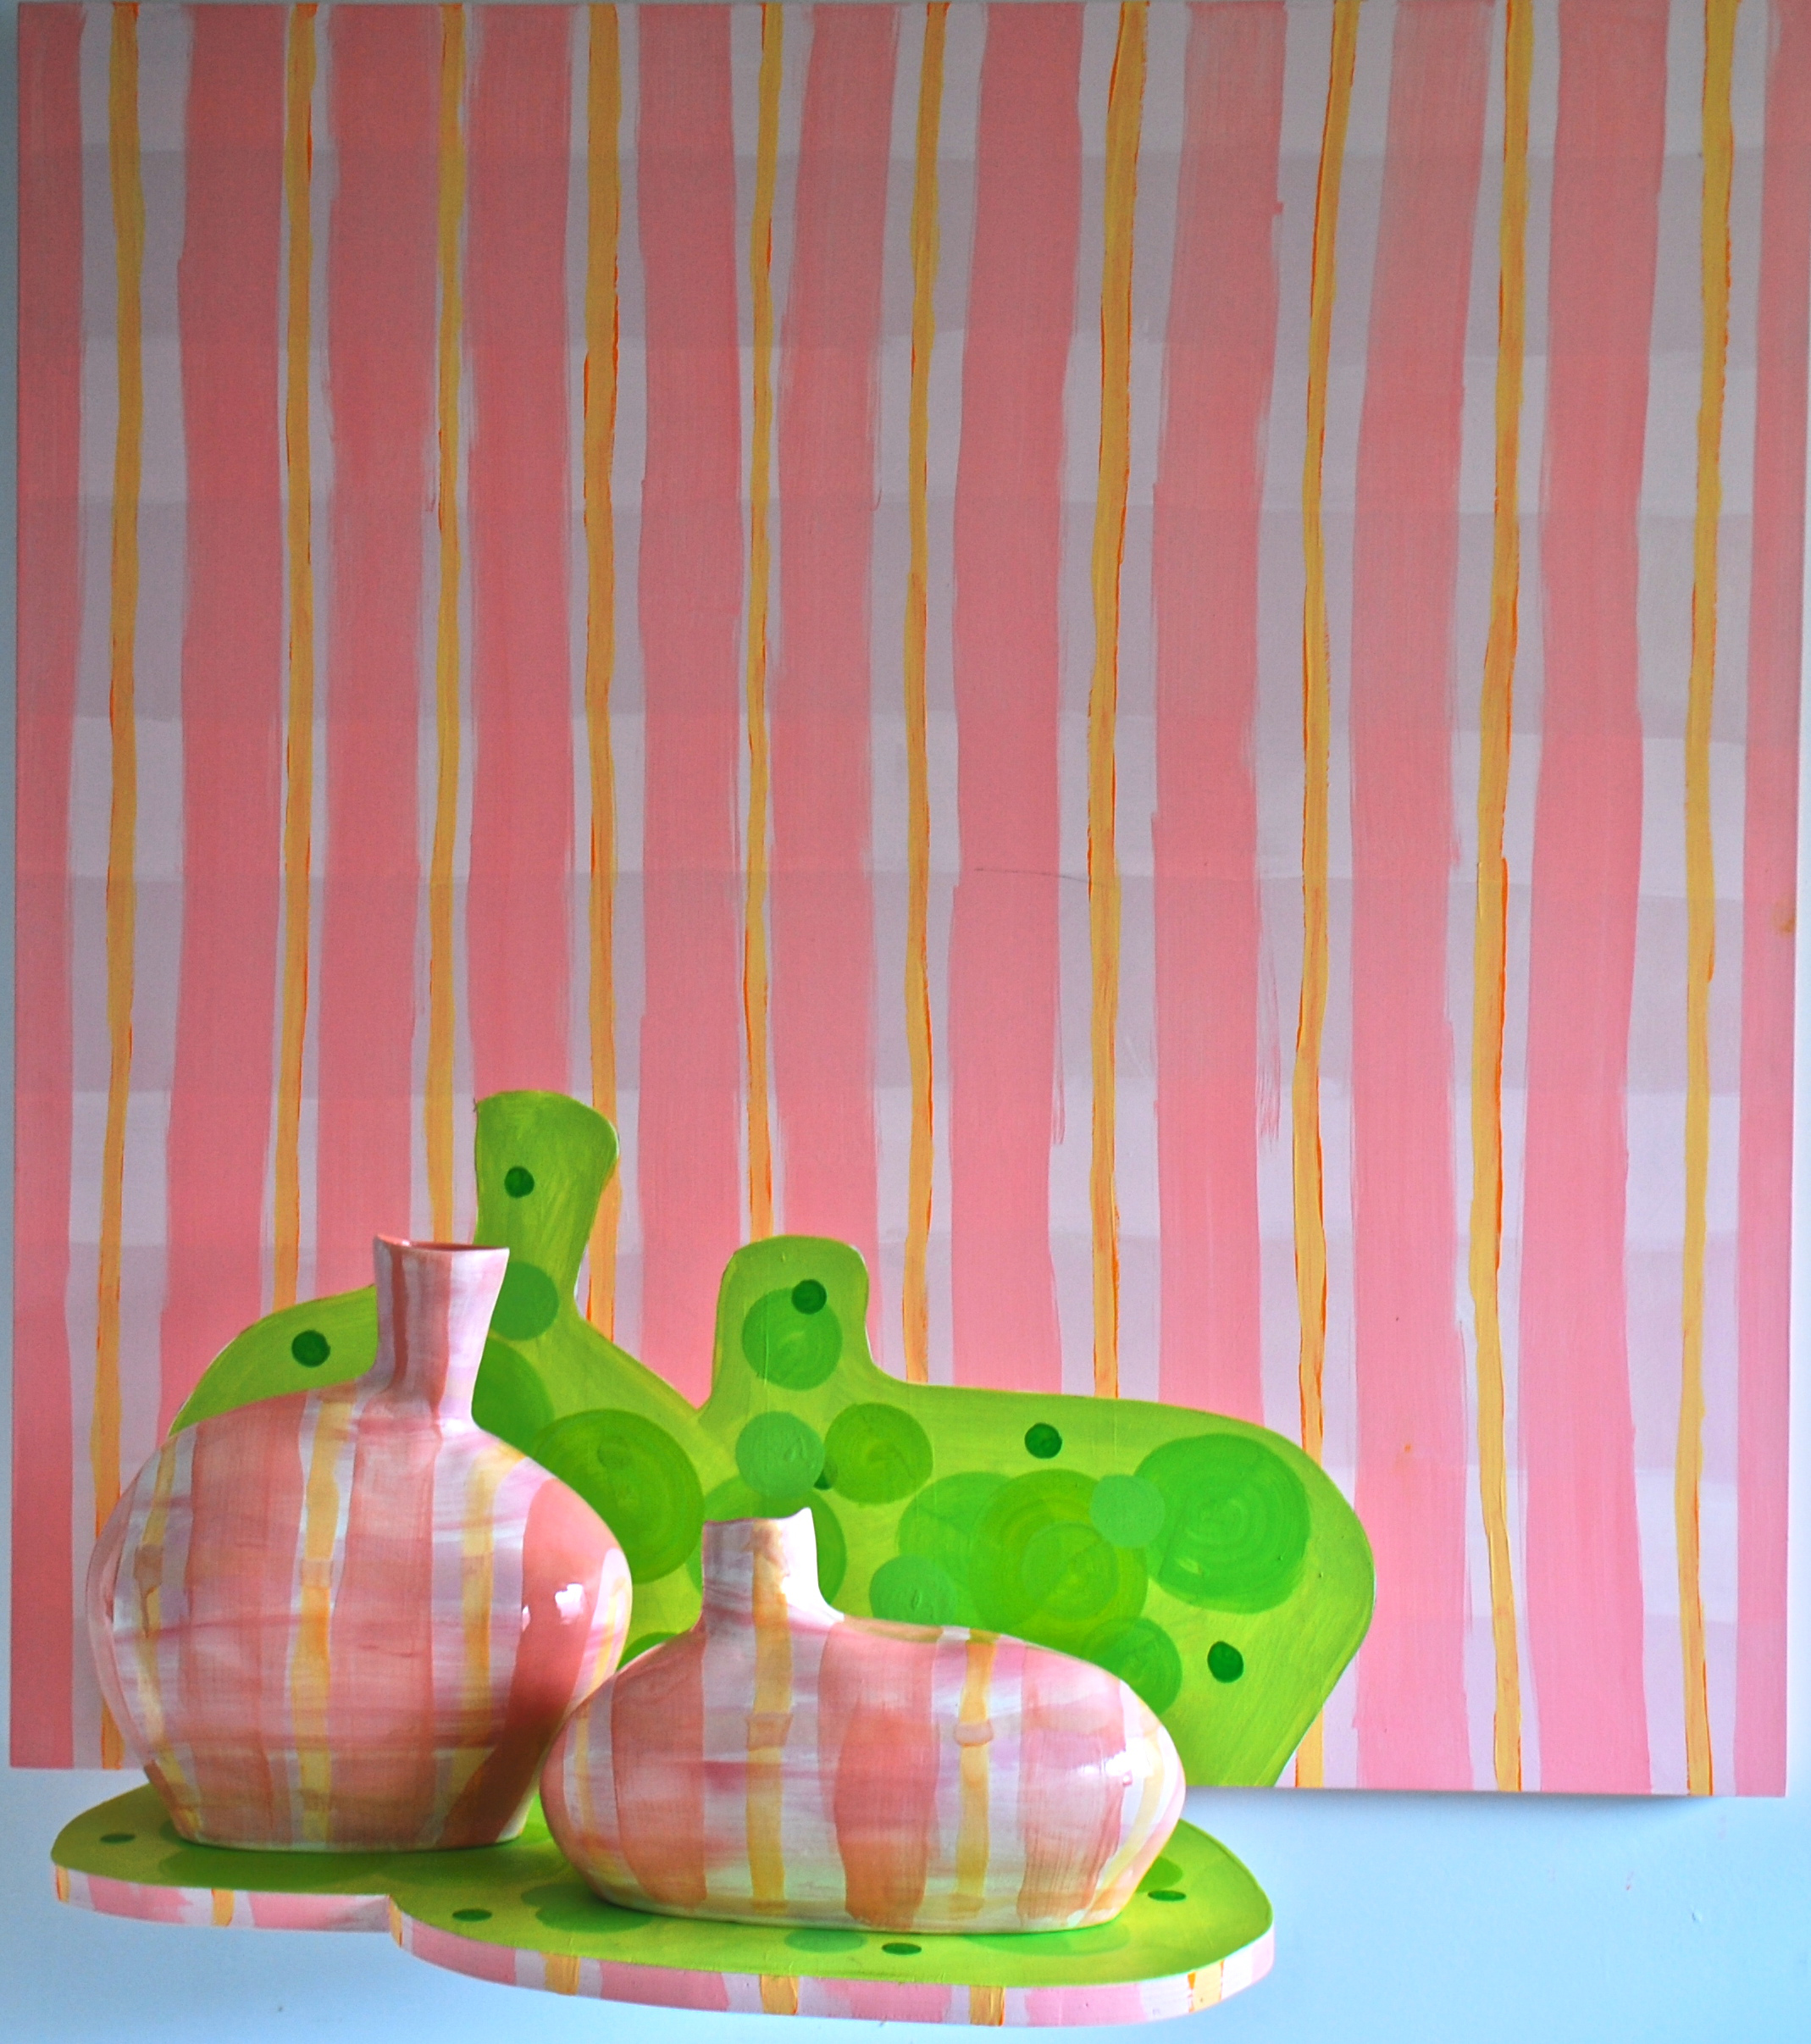 Pink Plaid Ovoids on Green Dot Silhouette  by Mary Anne Davis, 2010, Acrylic, ceramic, wooden panel